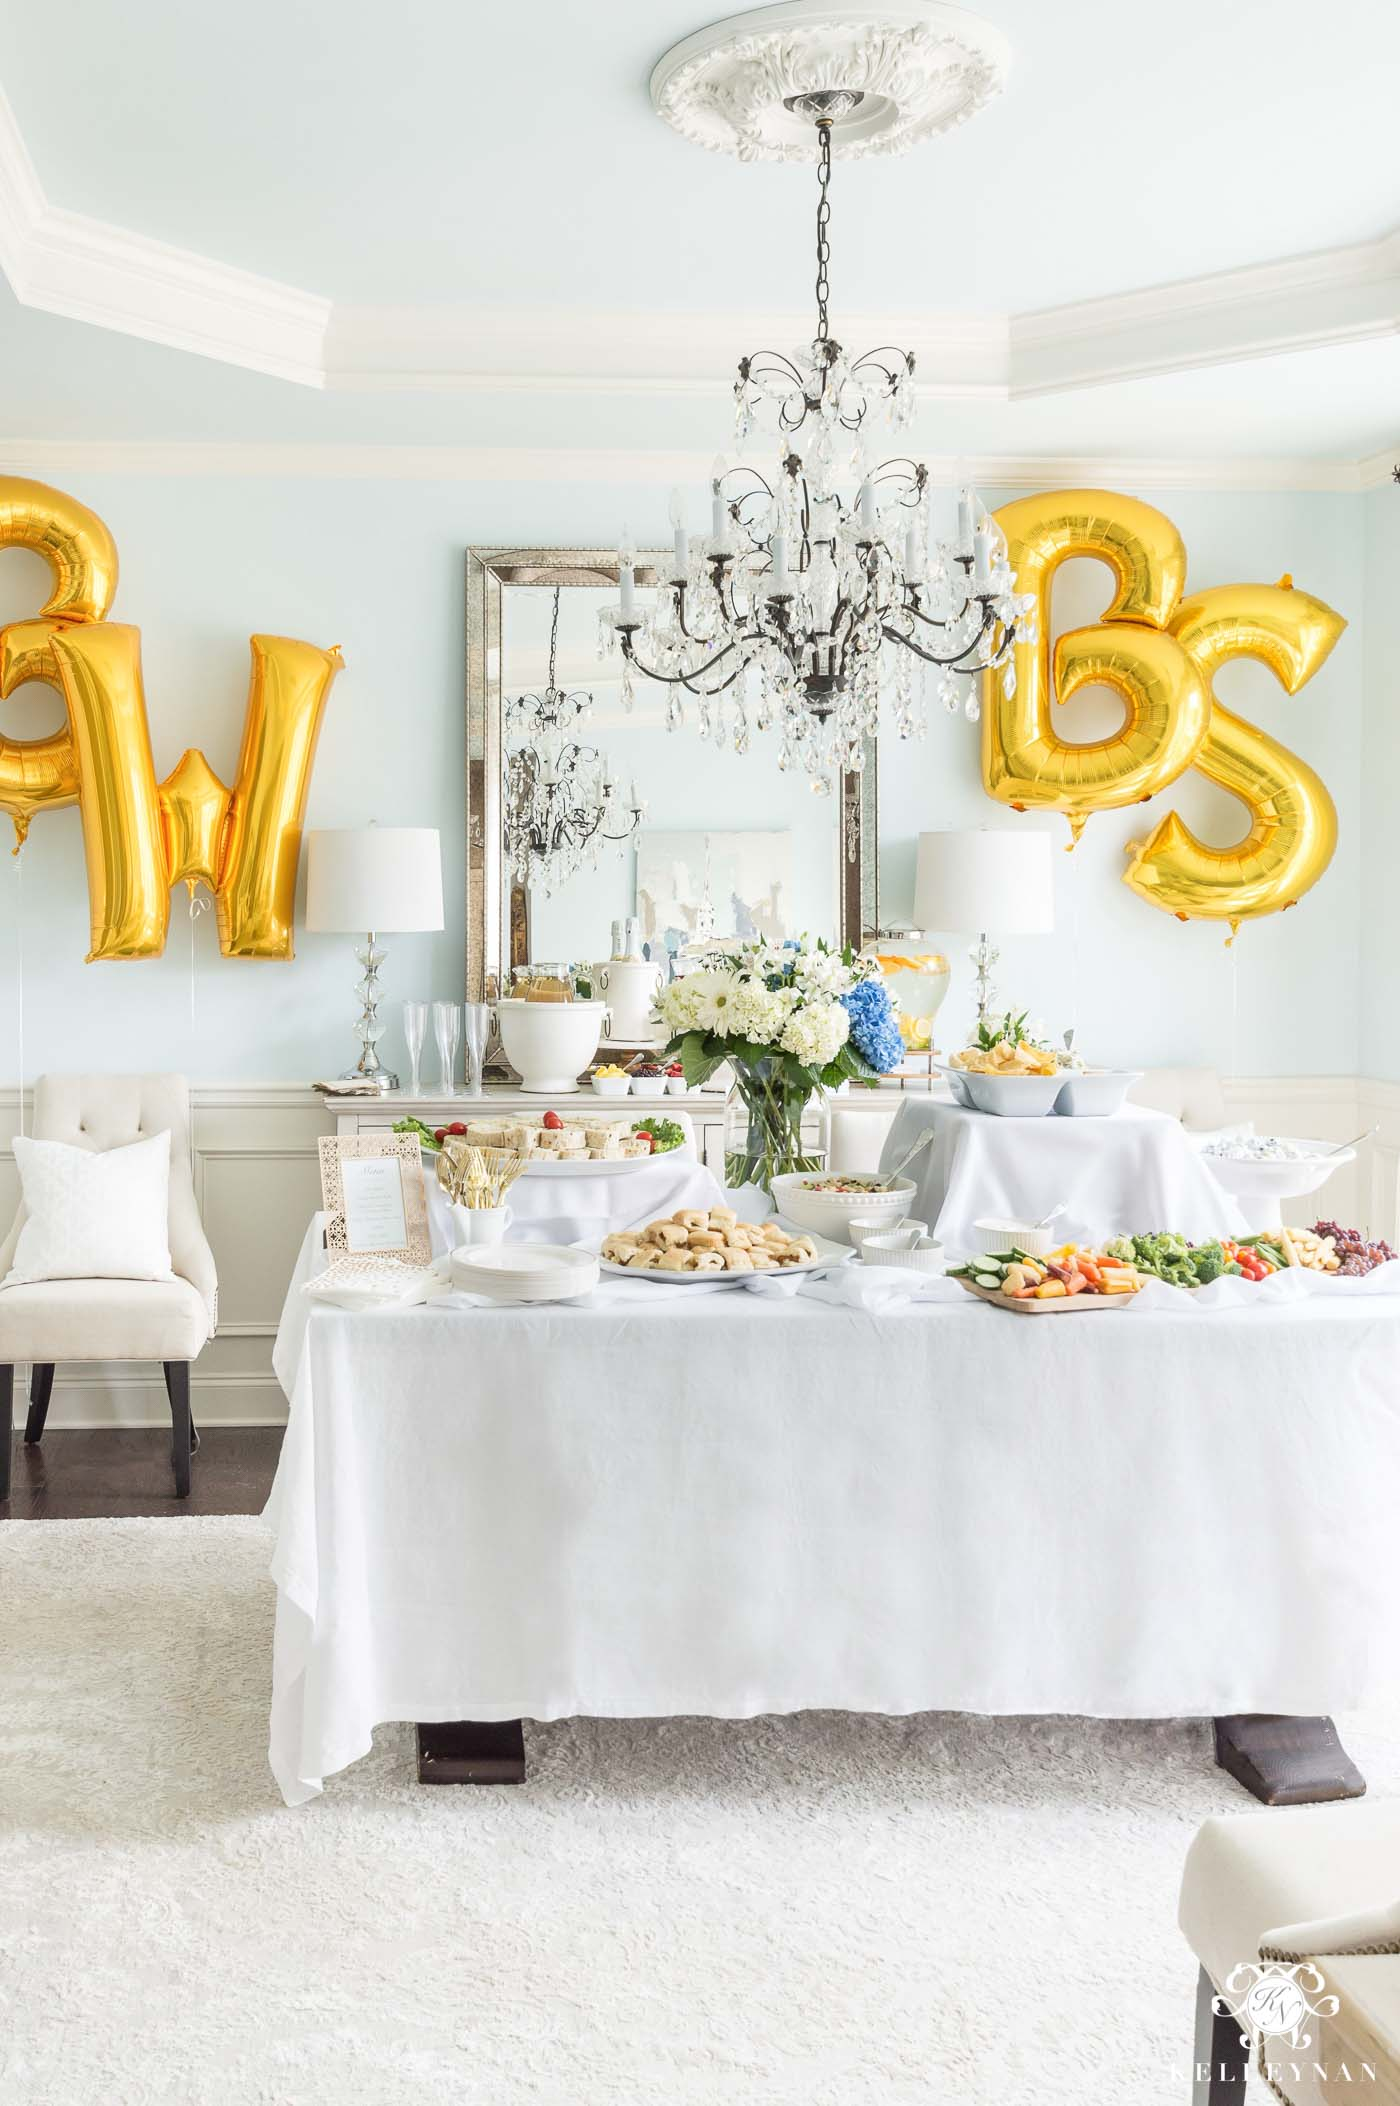 Baby Shower Ideas for Twins with Noah's Ark Theme